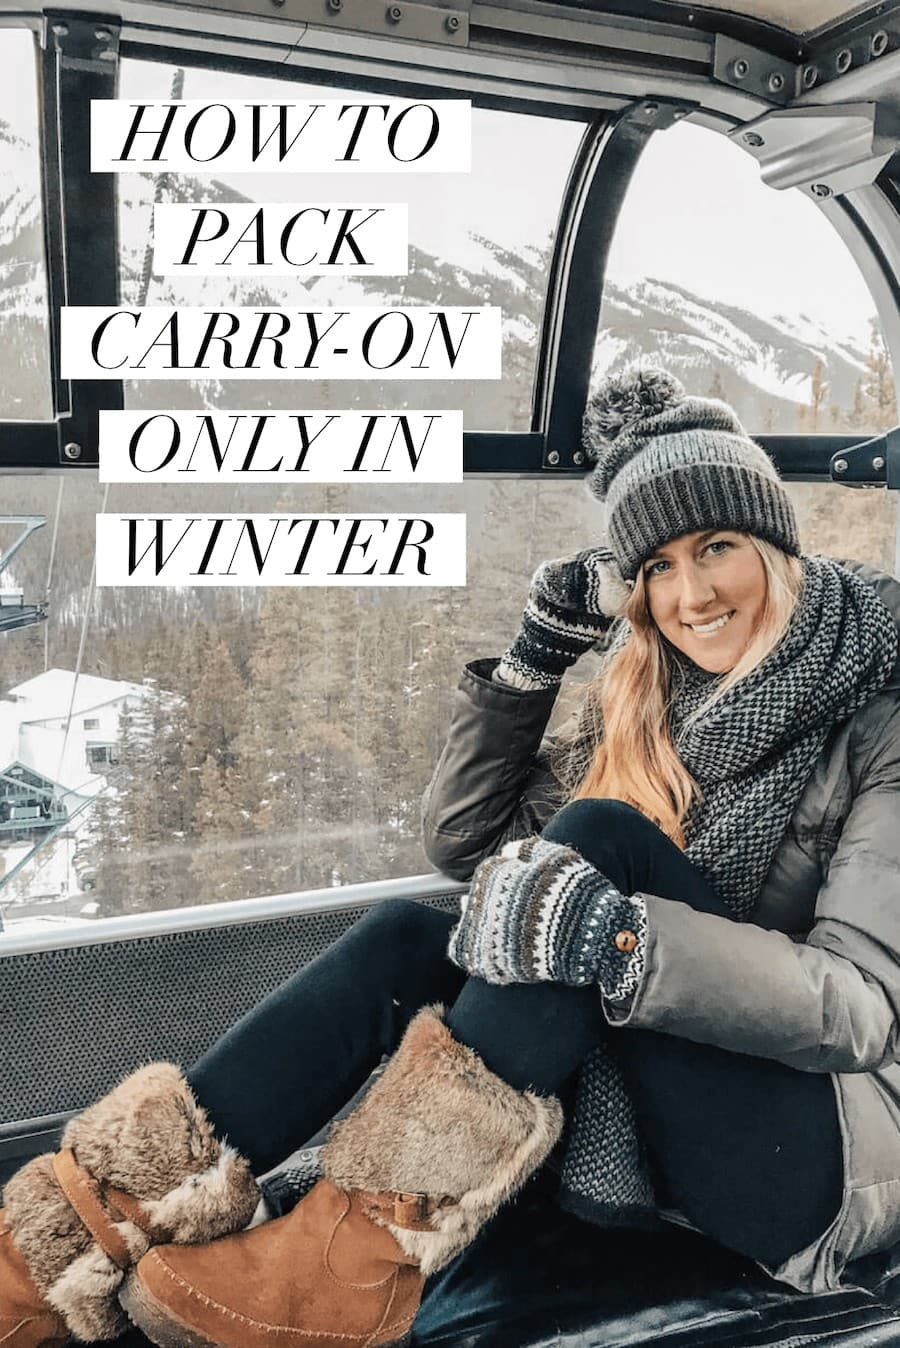 How to pack carry on only in winter